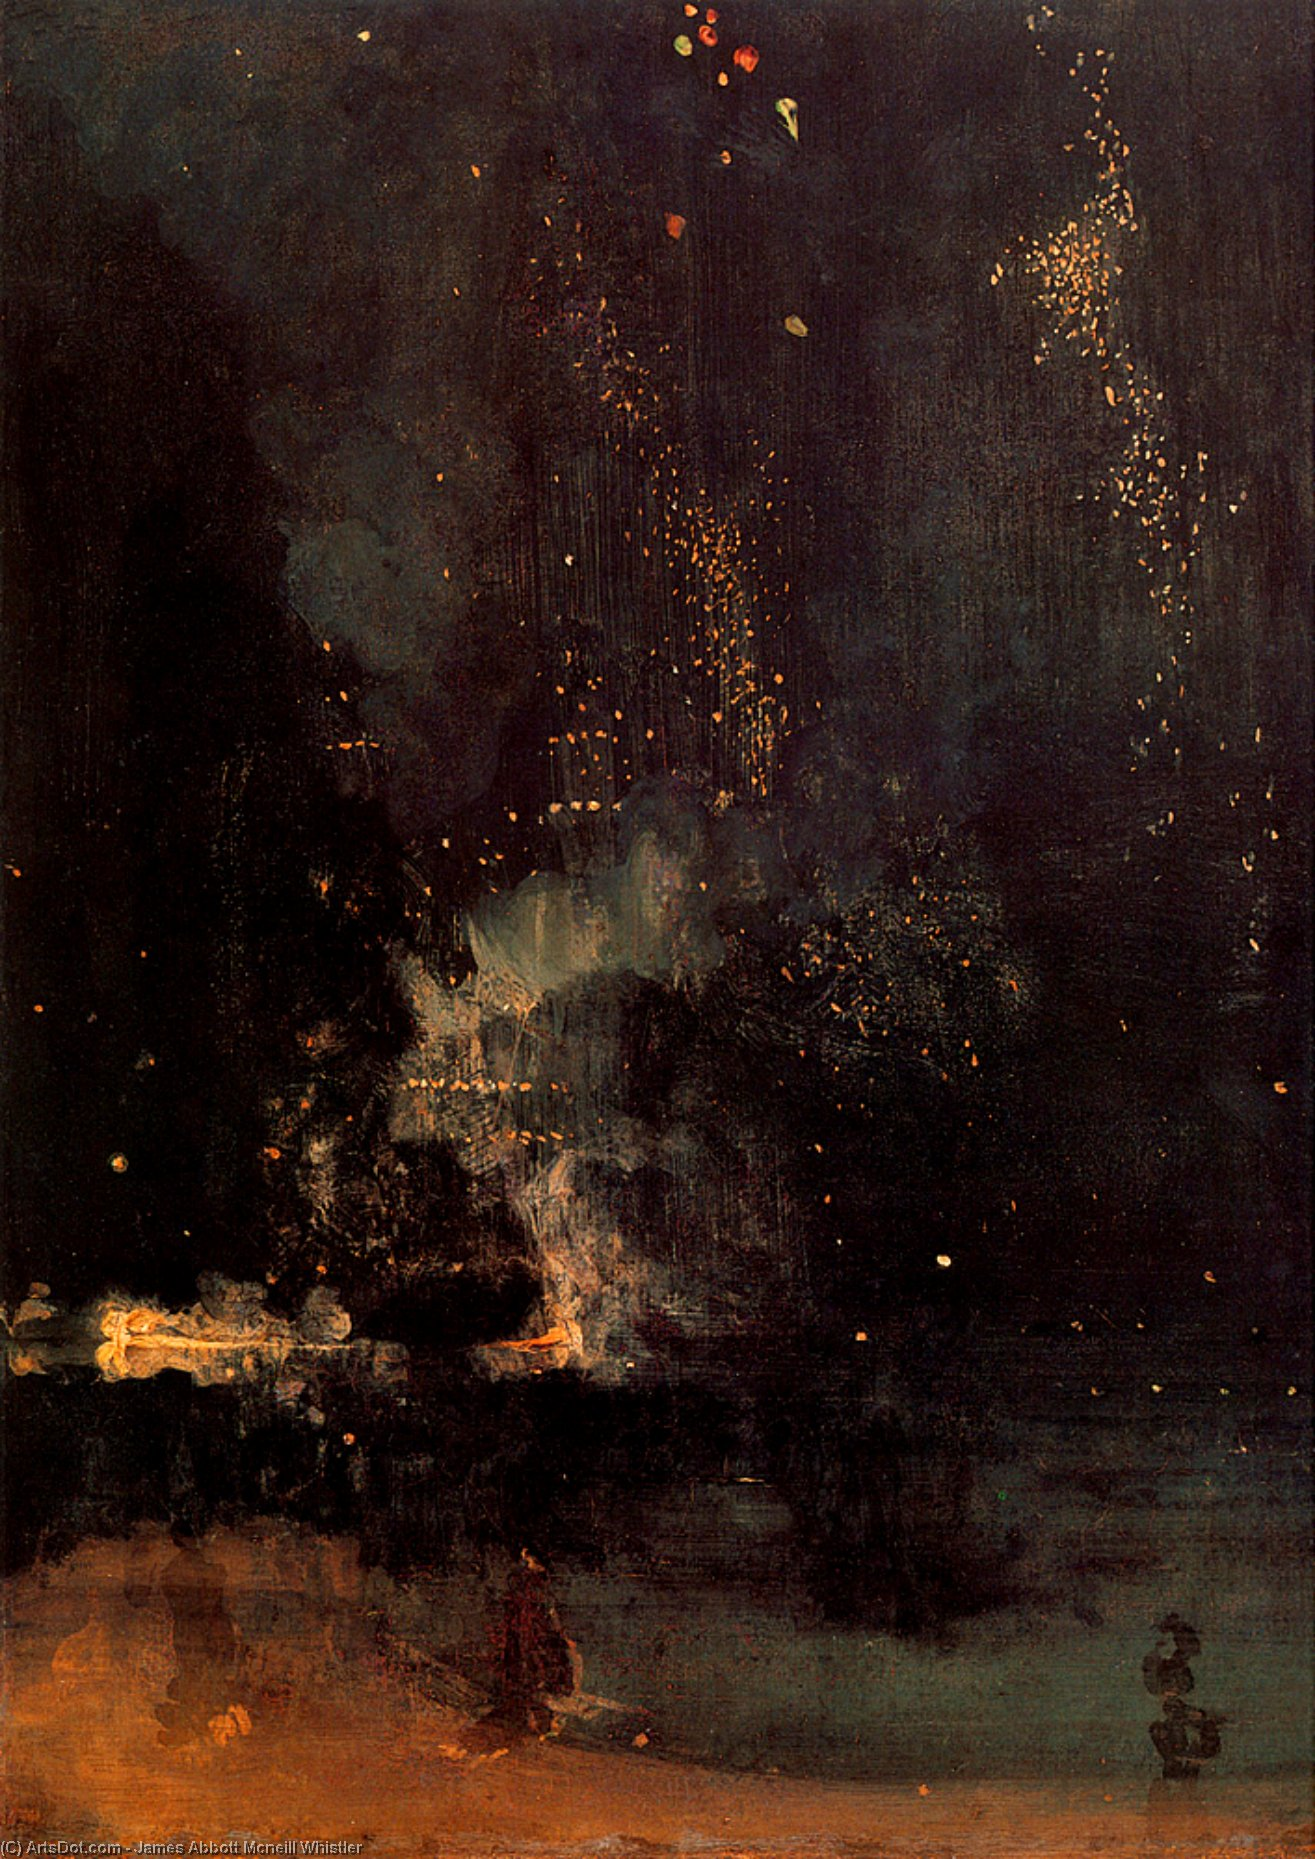 Wikioo.org - The Encyclopedia of Fine Arts - Painting, Artwork by James Abbott Mcneill Whistler - Nocturne in Black and Gold The Falling Rocket